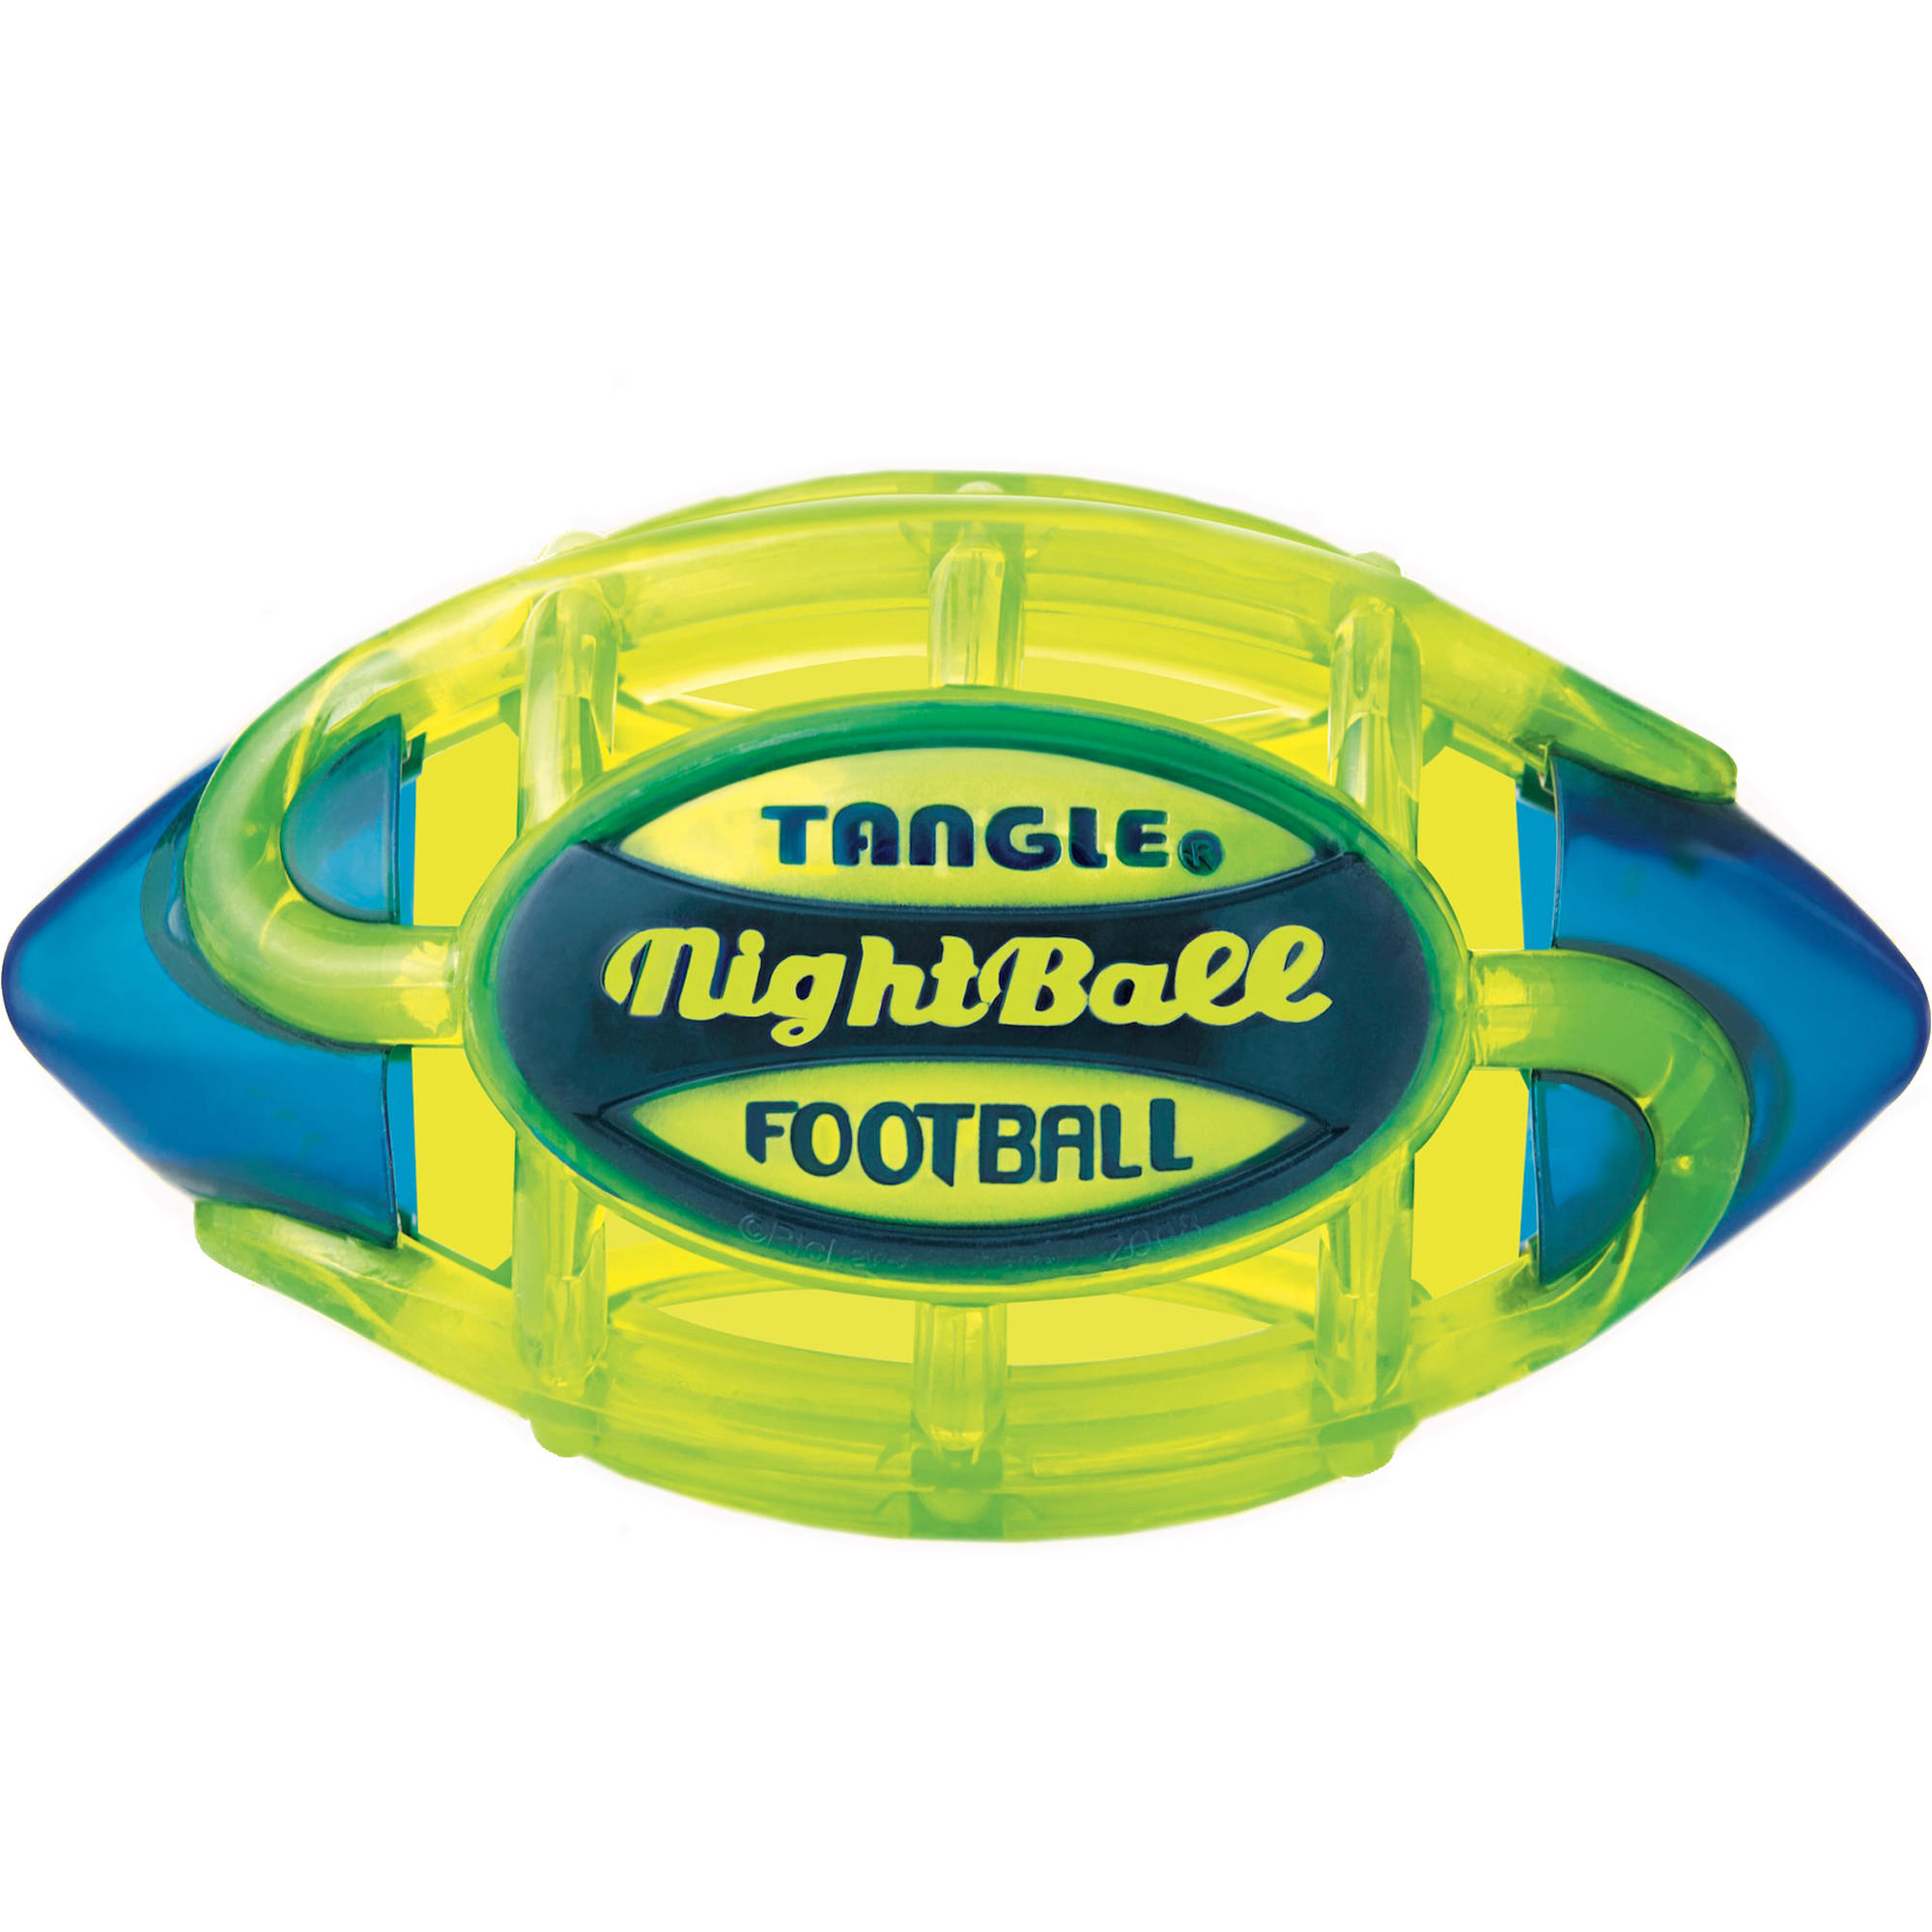 Tangle NightBall Football, Electric Green, Large by Tangle